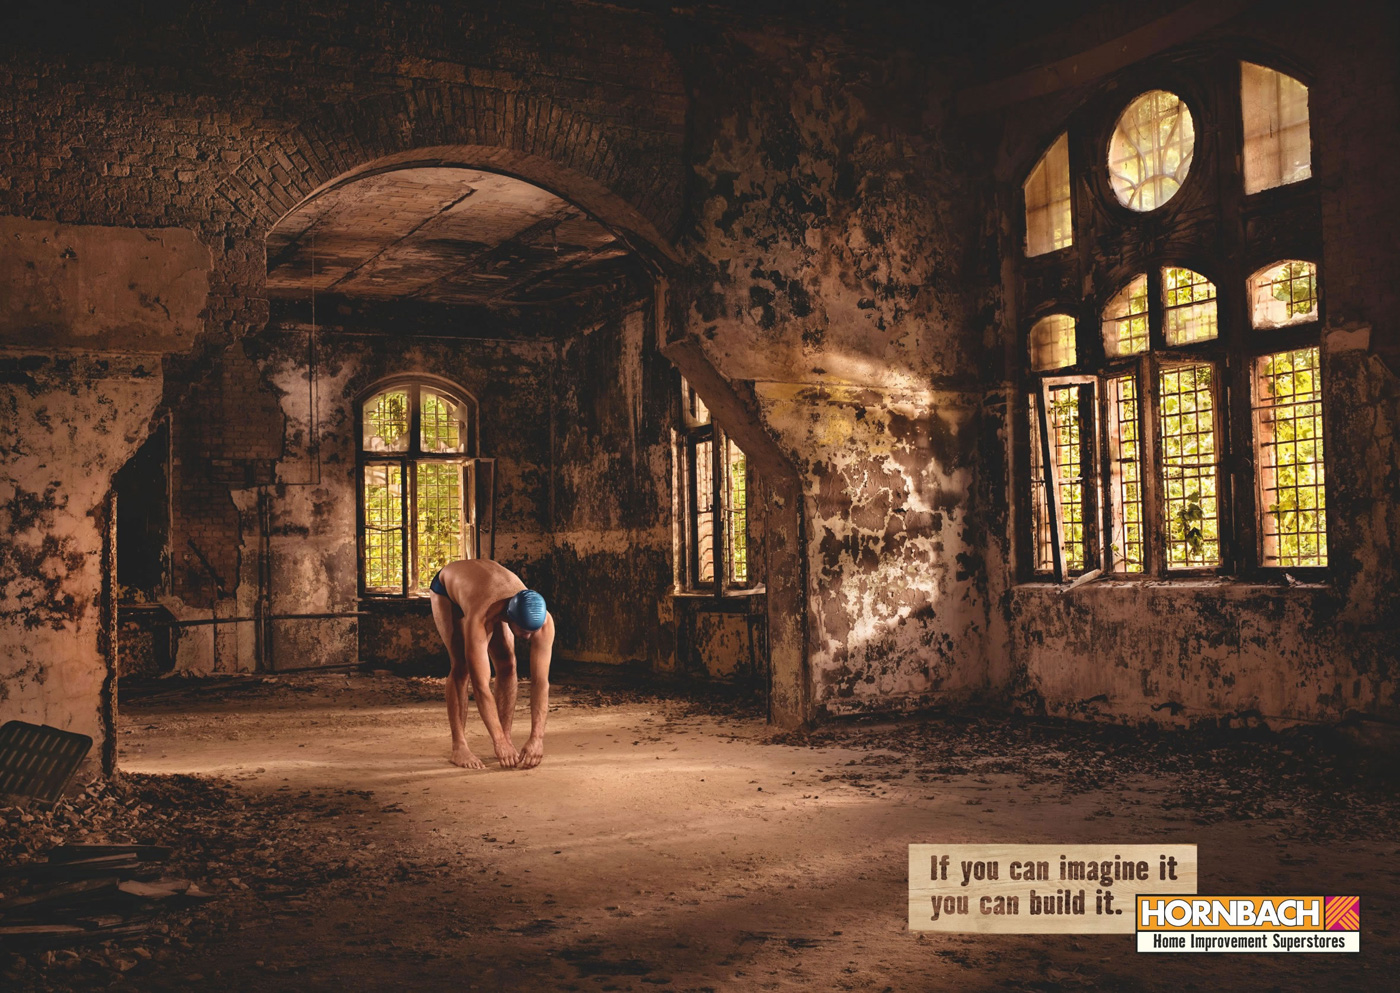 Hornbach print advert by heimat pool ads of the world for Wallpaper home improvement questions